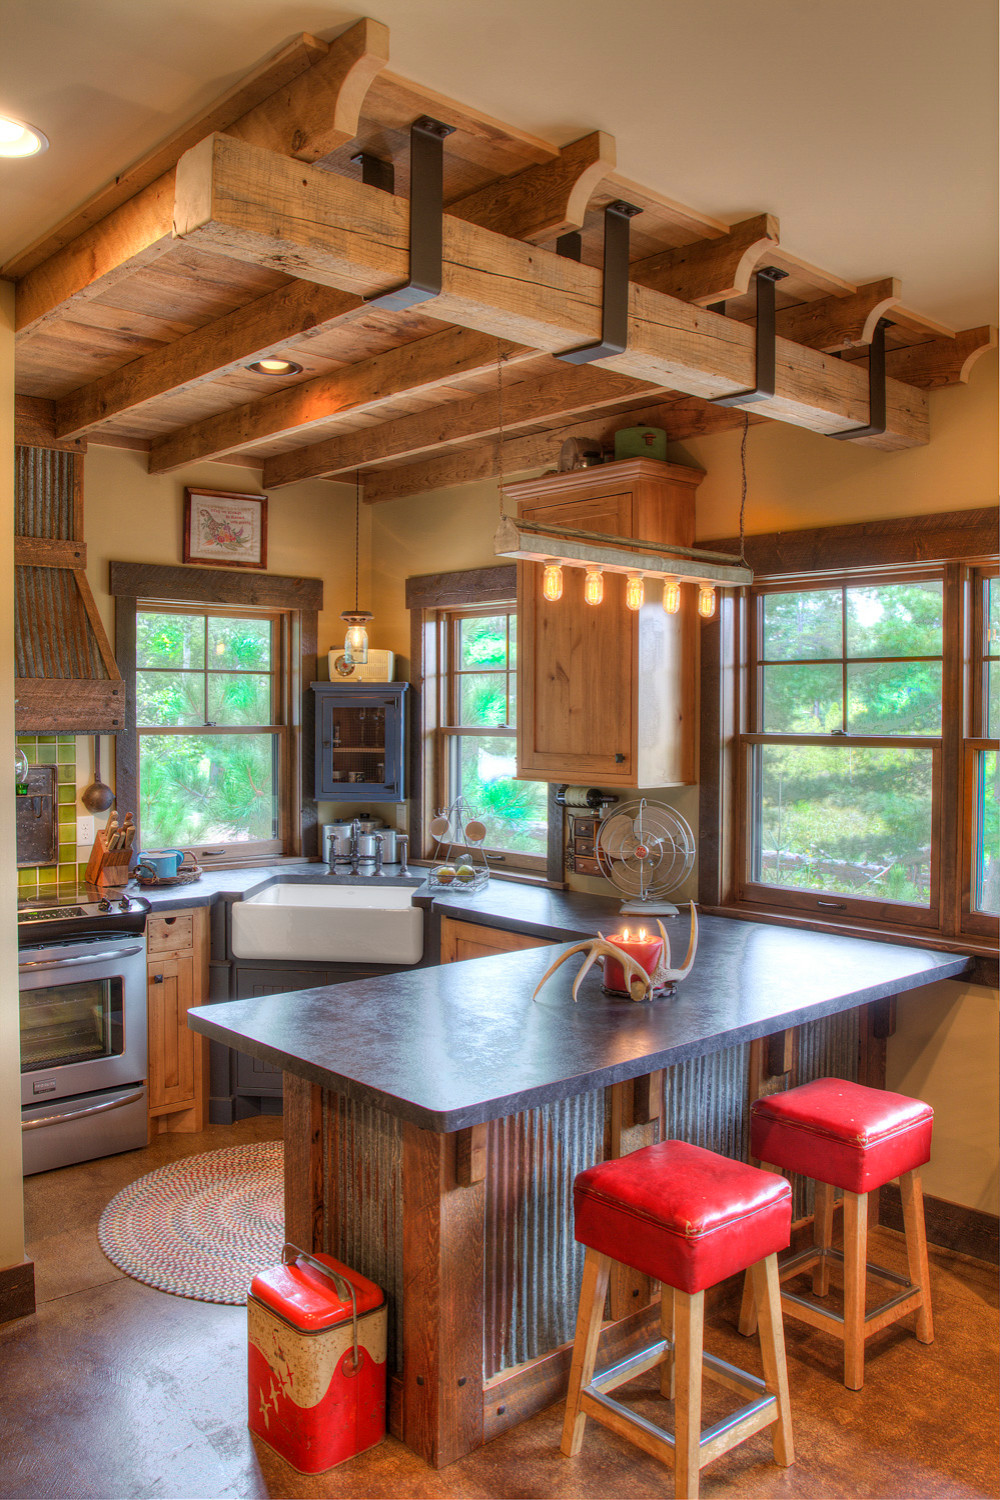 75 Beautiful Rustic Kitchen With Laminate Countertops Pictures Ideas January 2021 Houzz